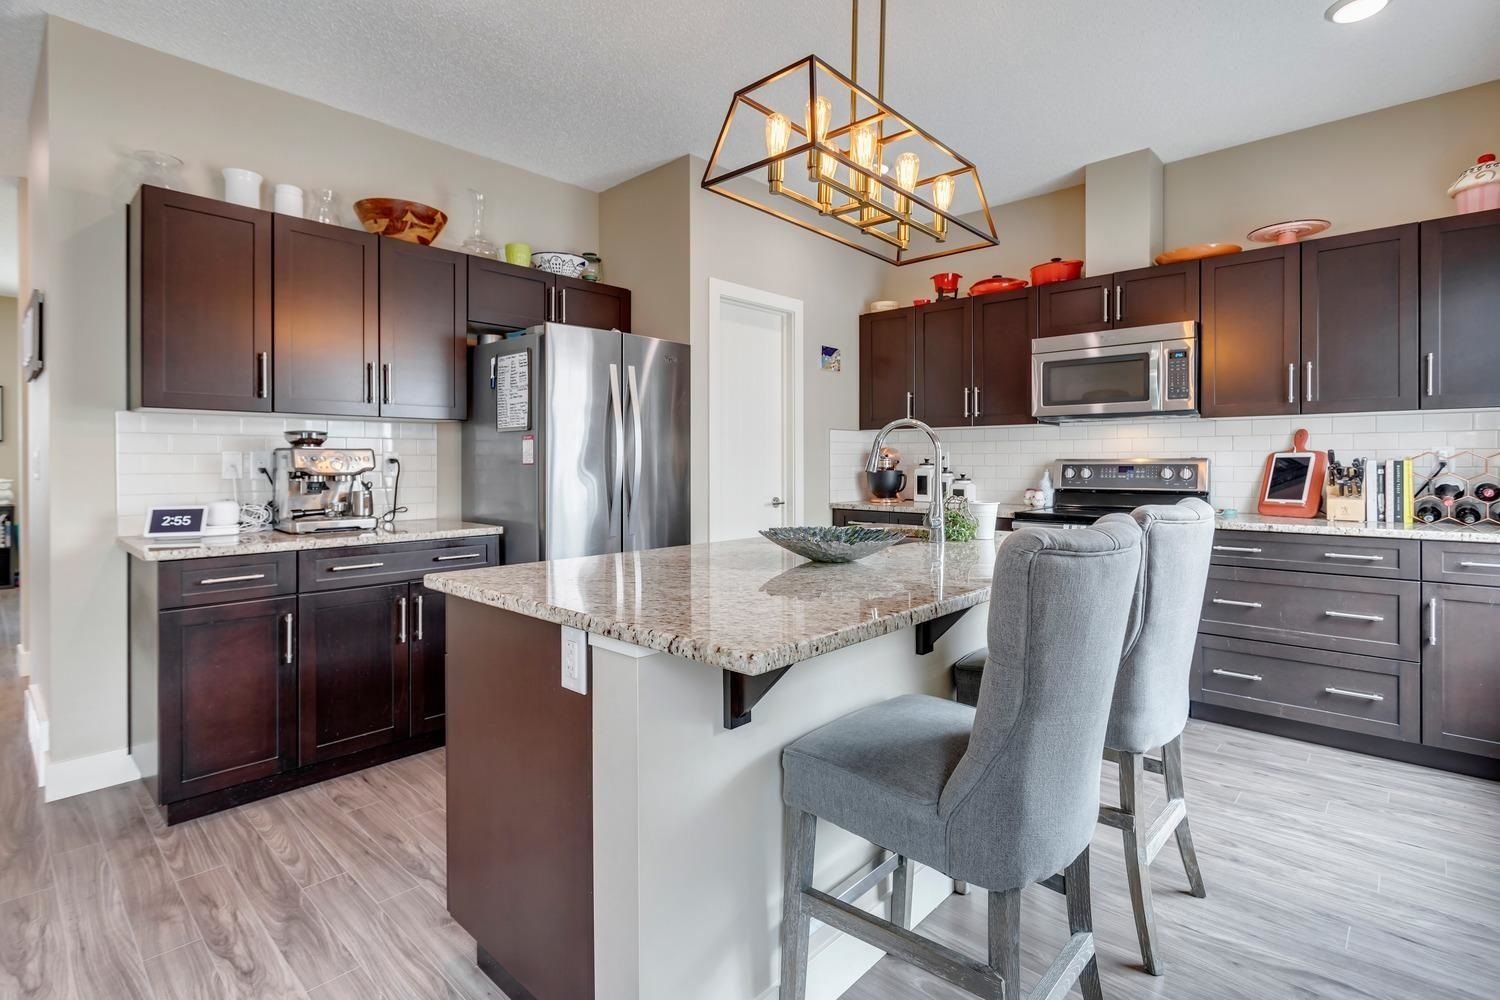 Main Photo: 32 804 WELSH Drive in Edmonton: Zone 53 Townhouse for sale : MLS®# E4246512